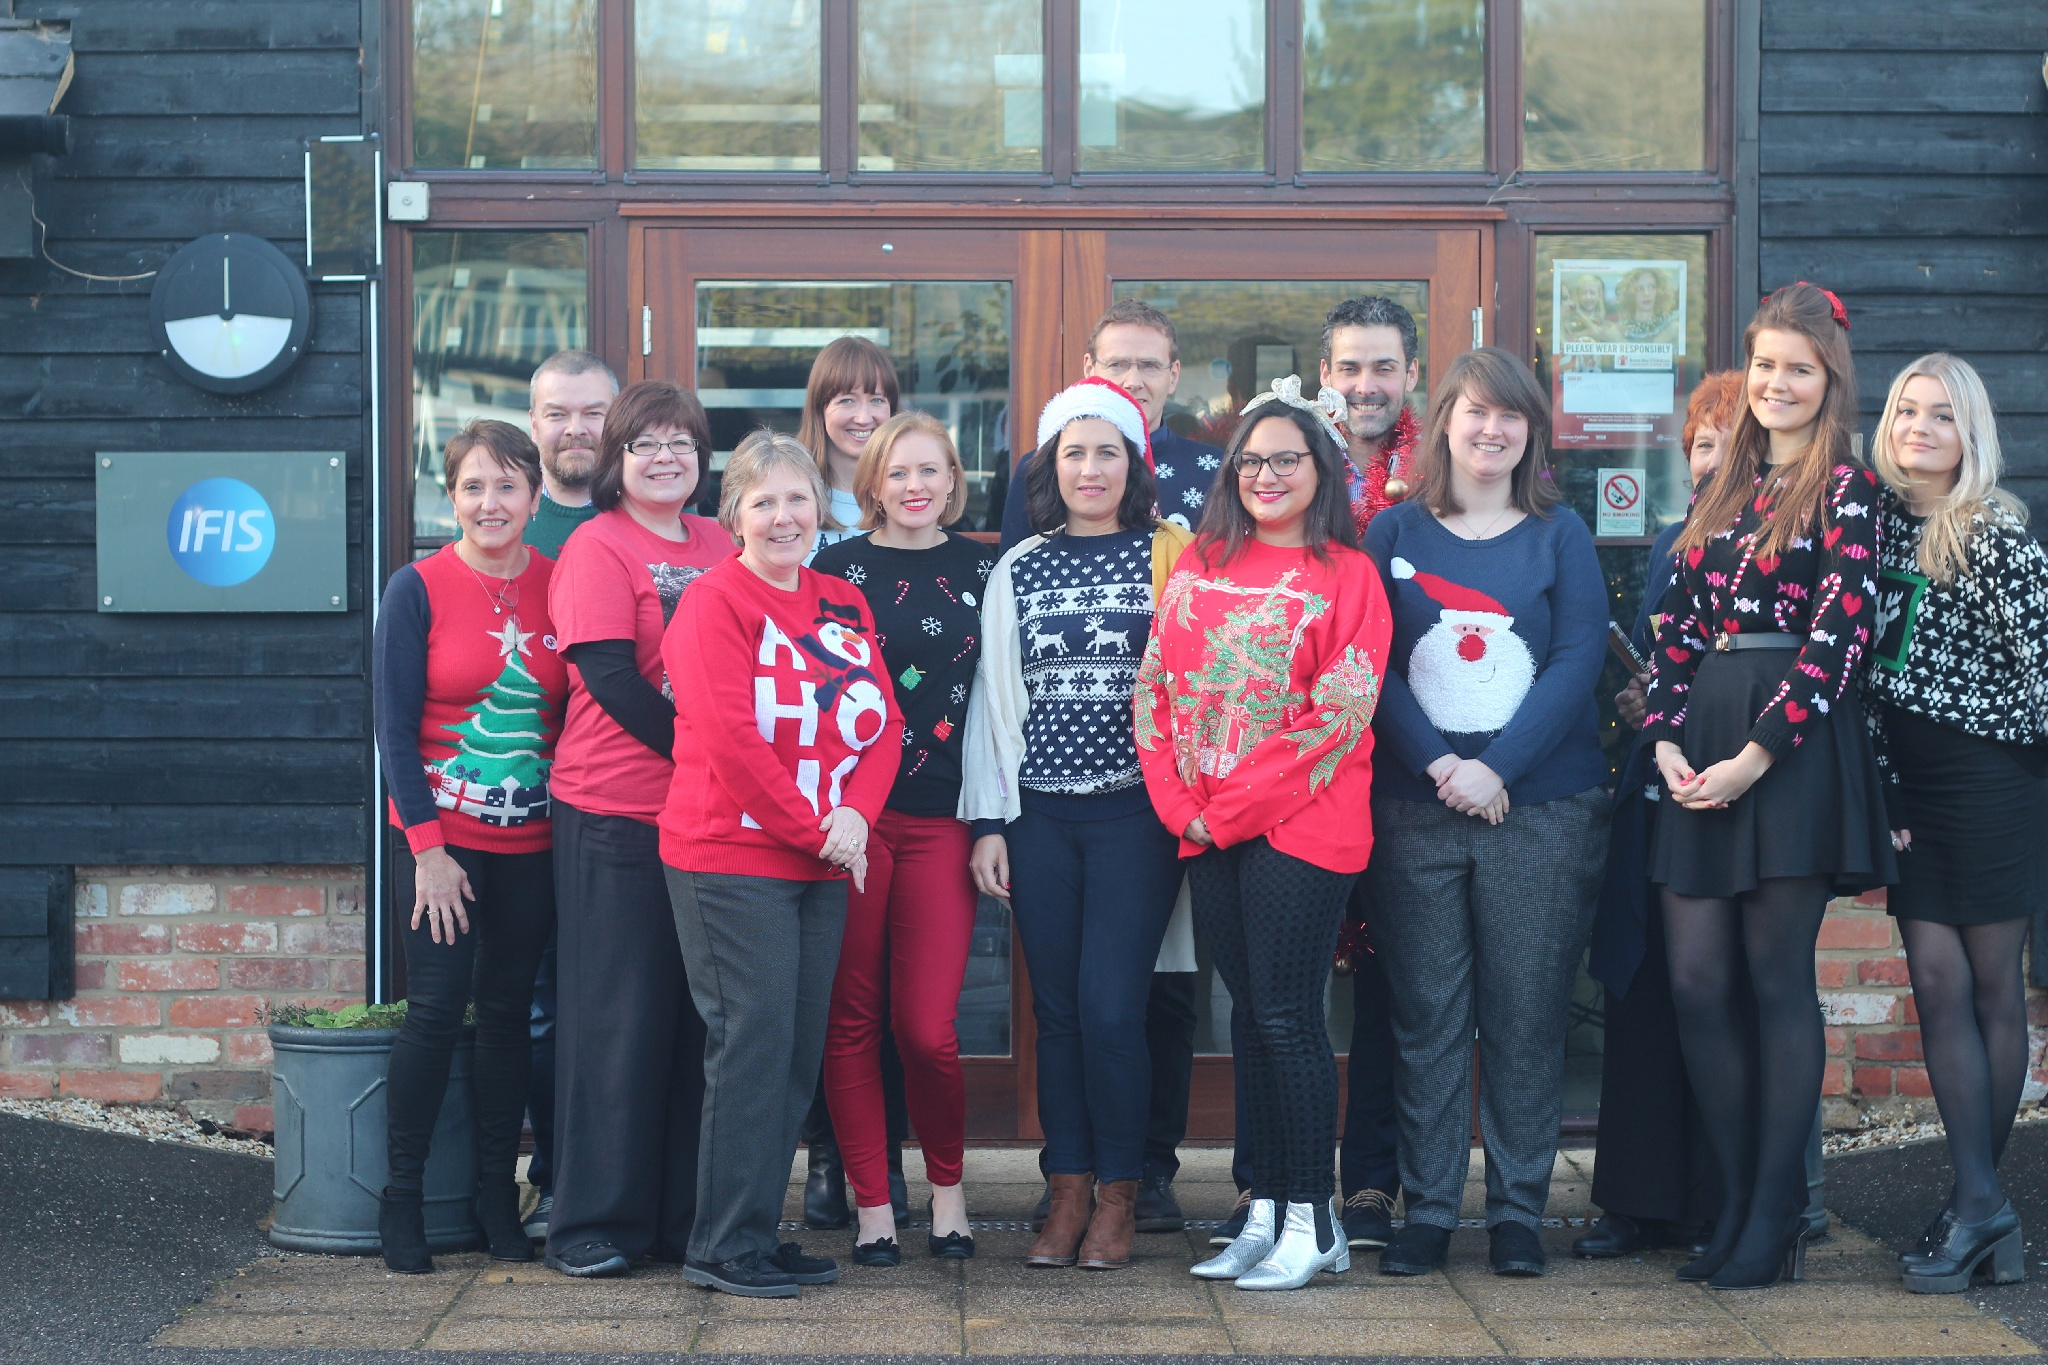 Christmas Jumper Day 2018 | IFIS Publishing